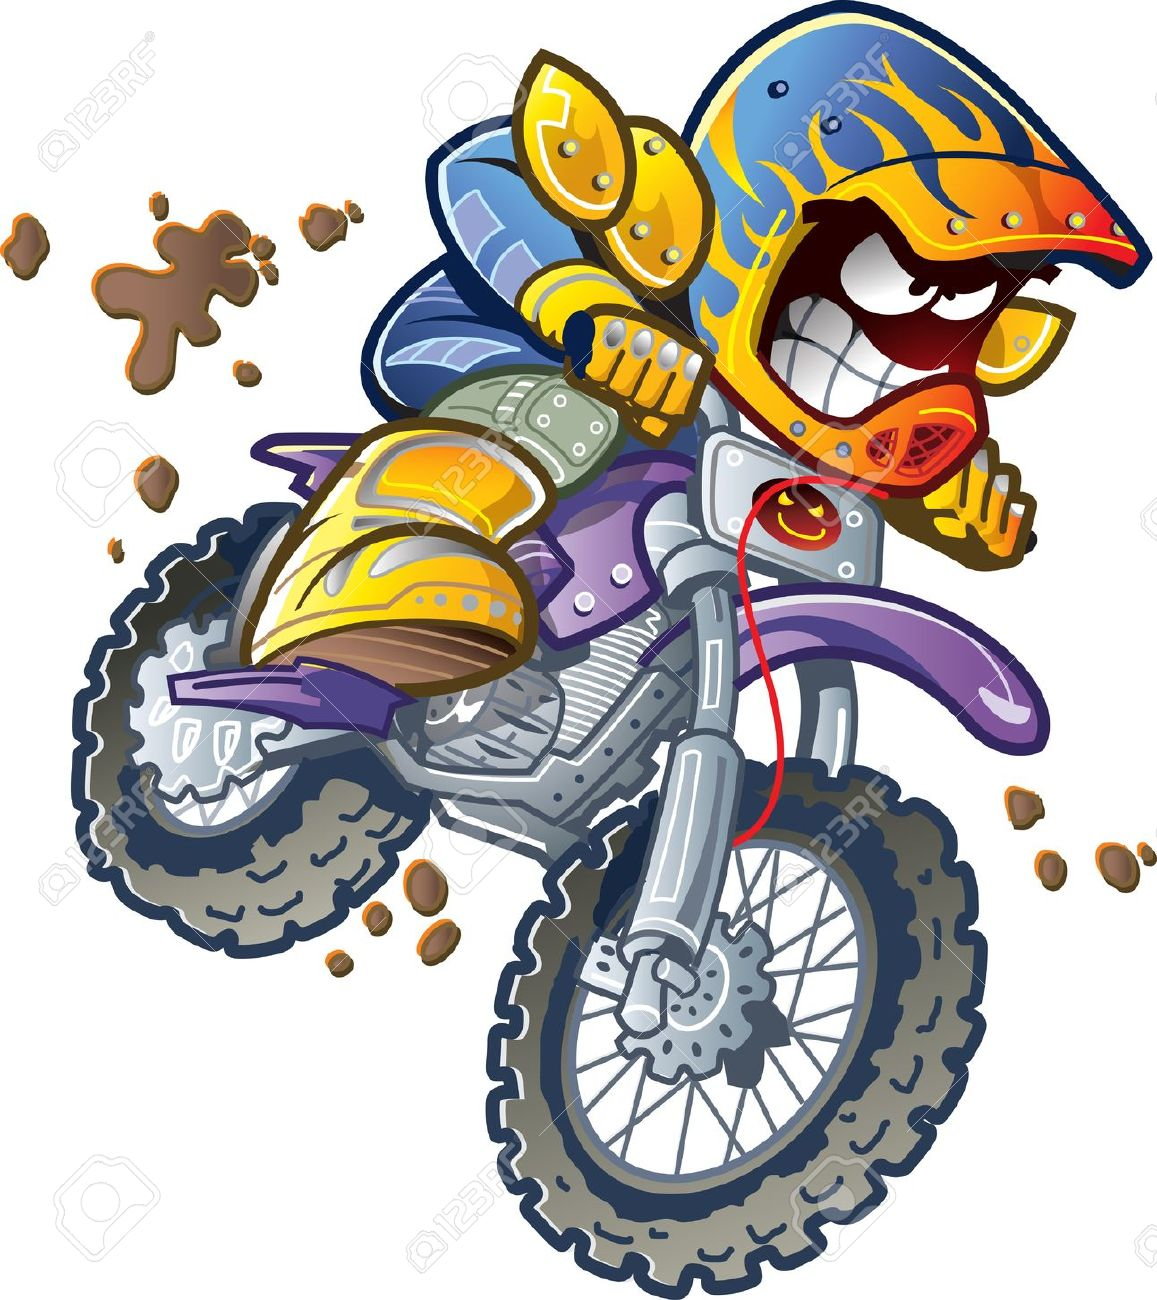 Dirtbike Clipart 20 Free Cliparts  Download Images On -1982